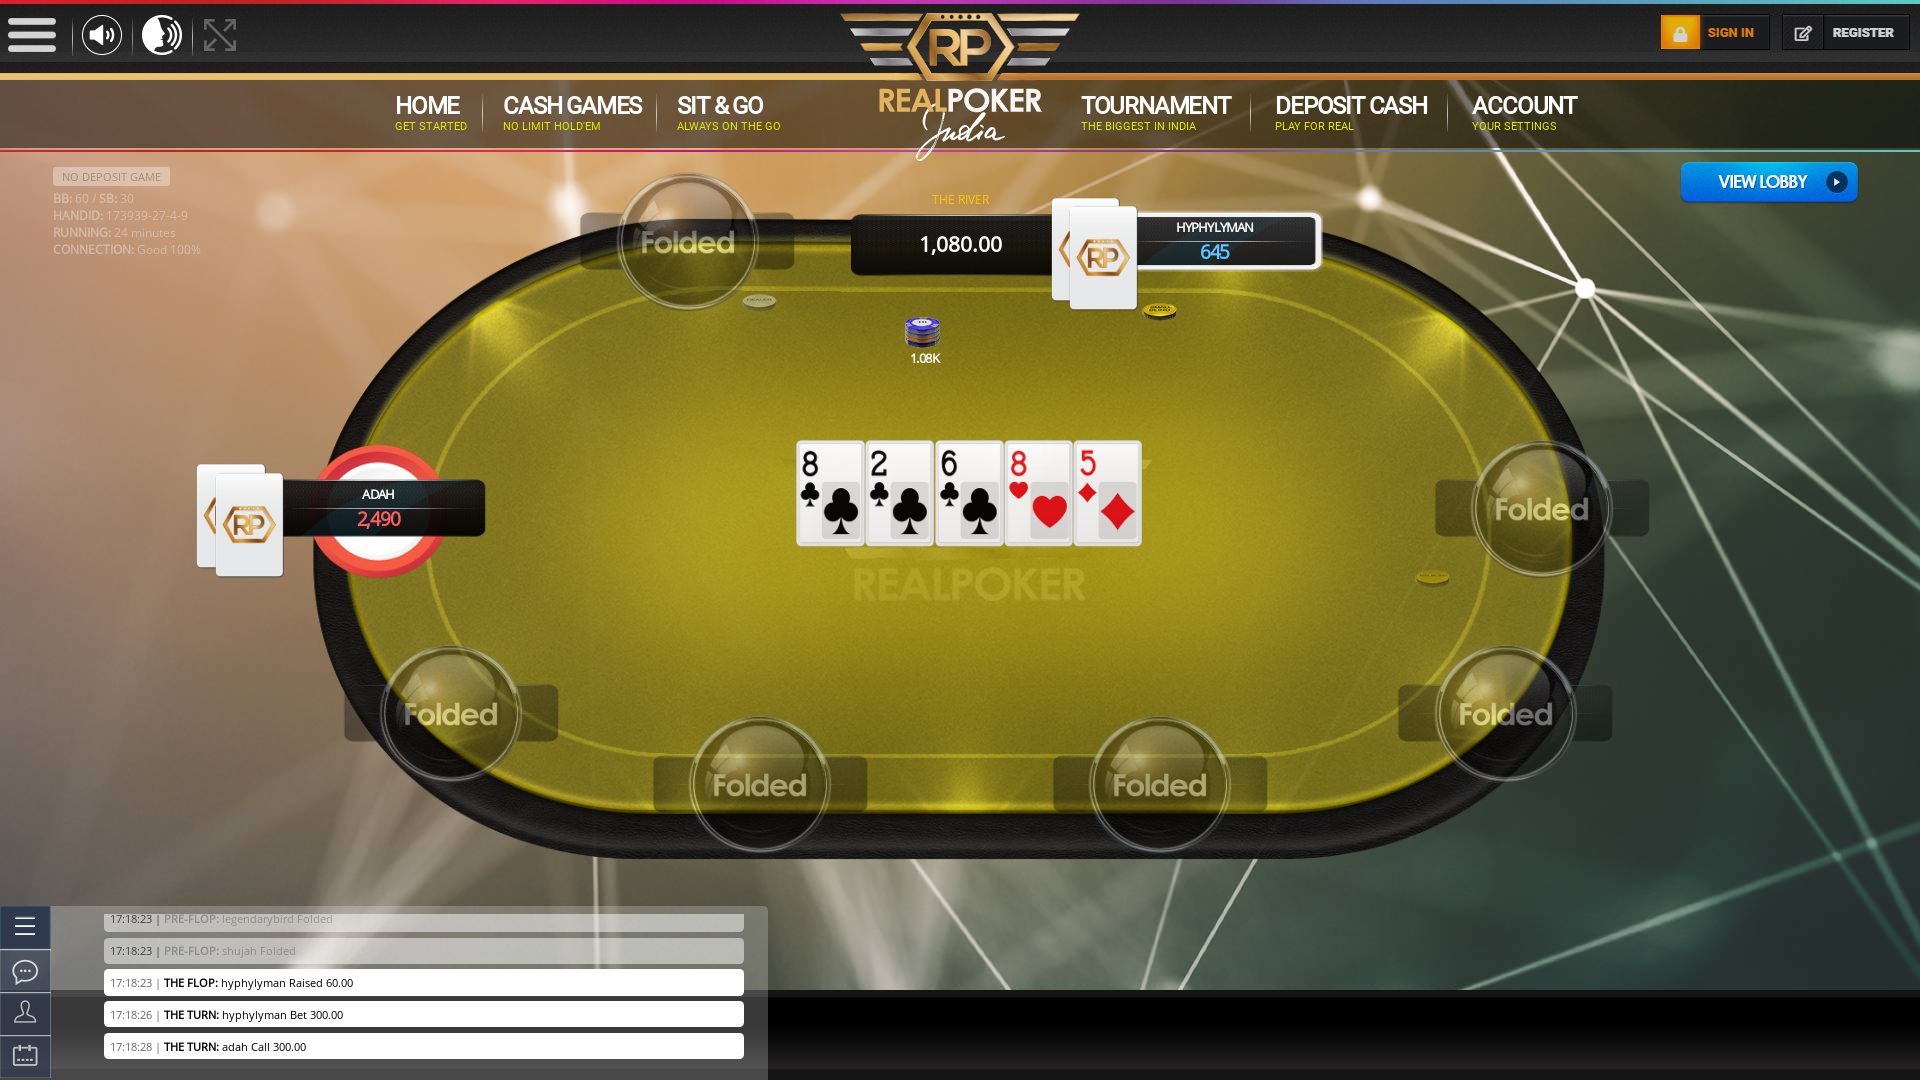 Real poker 10 player table in the 24th minute of the match